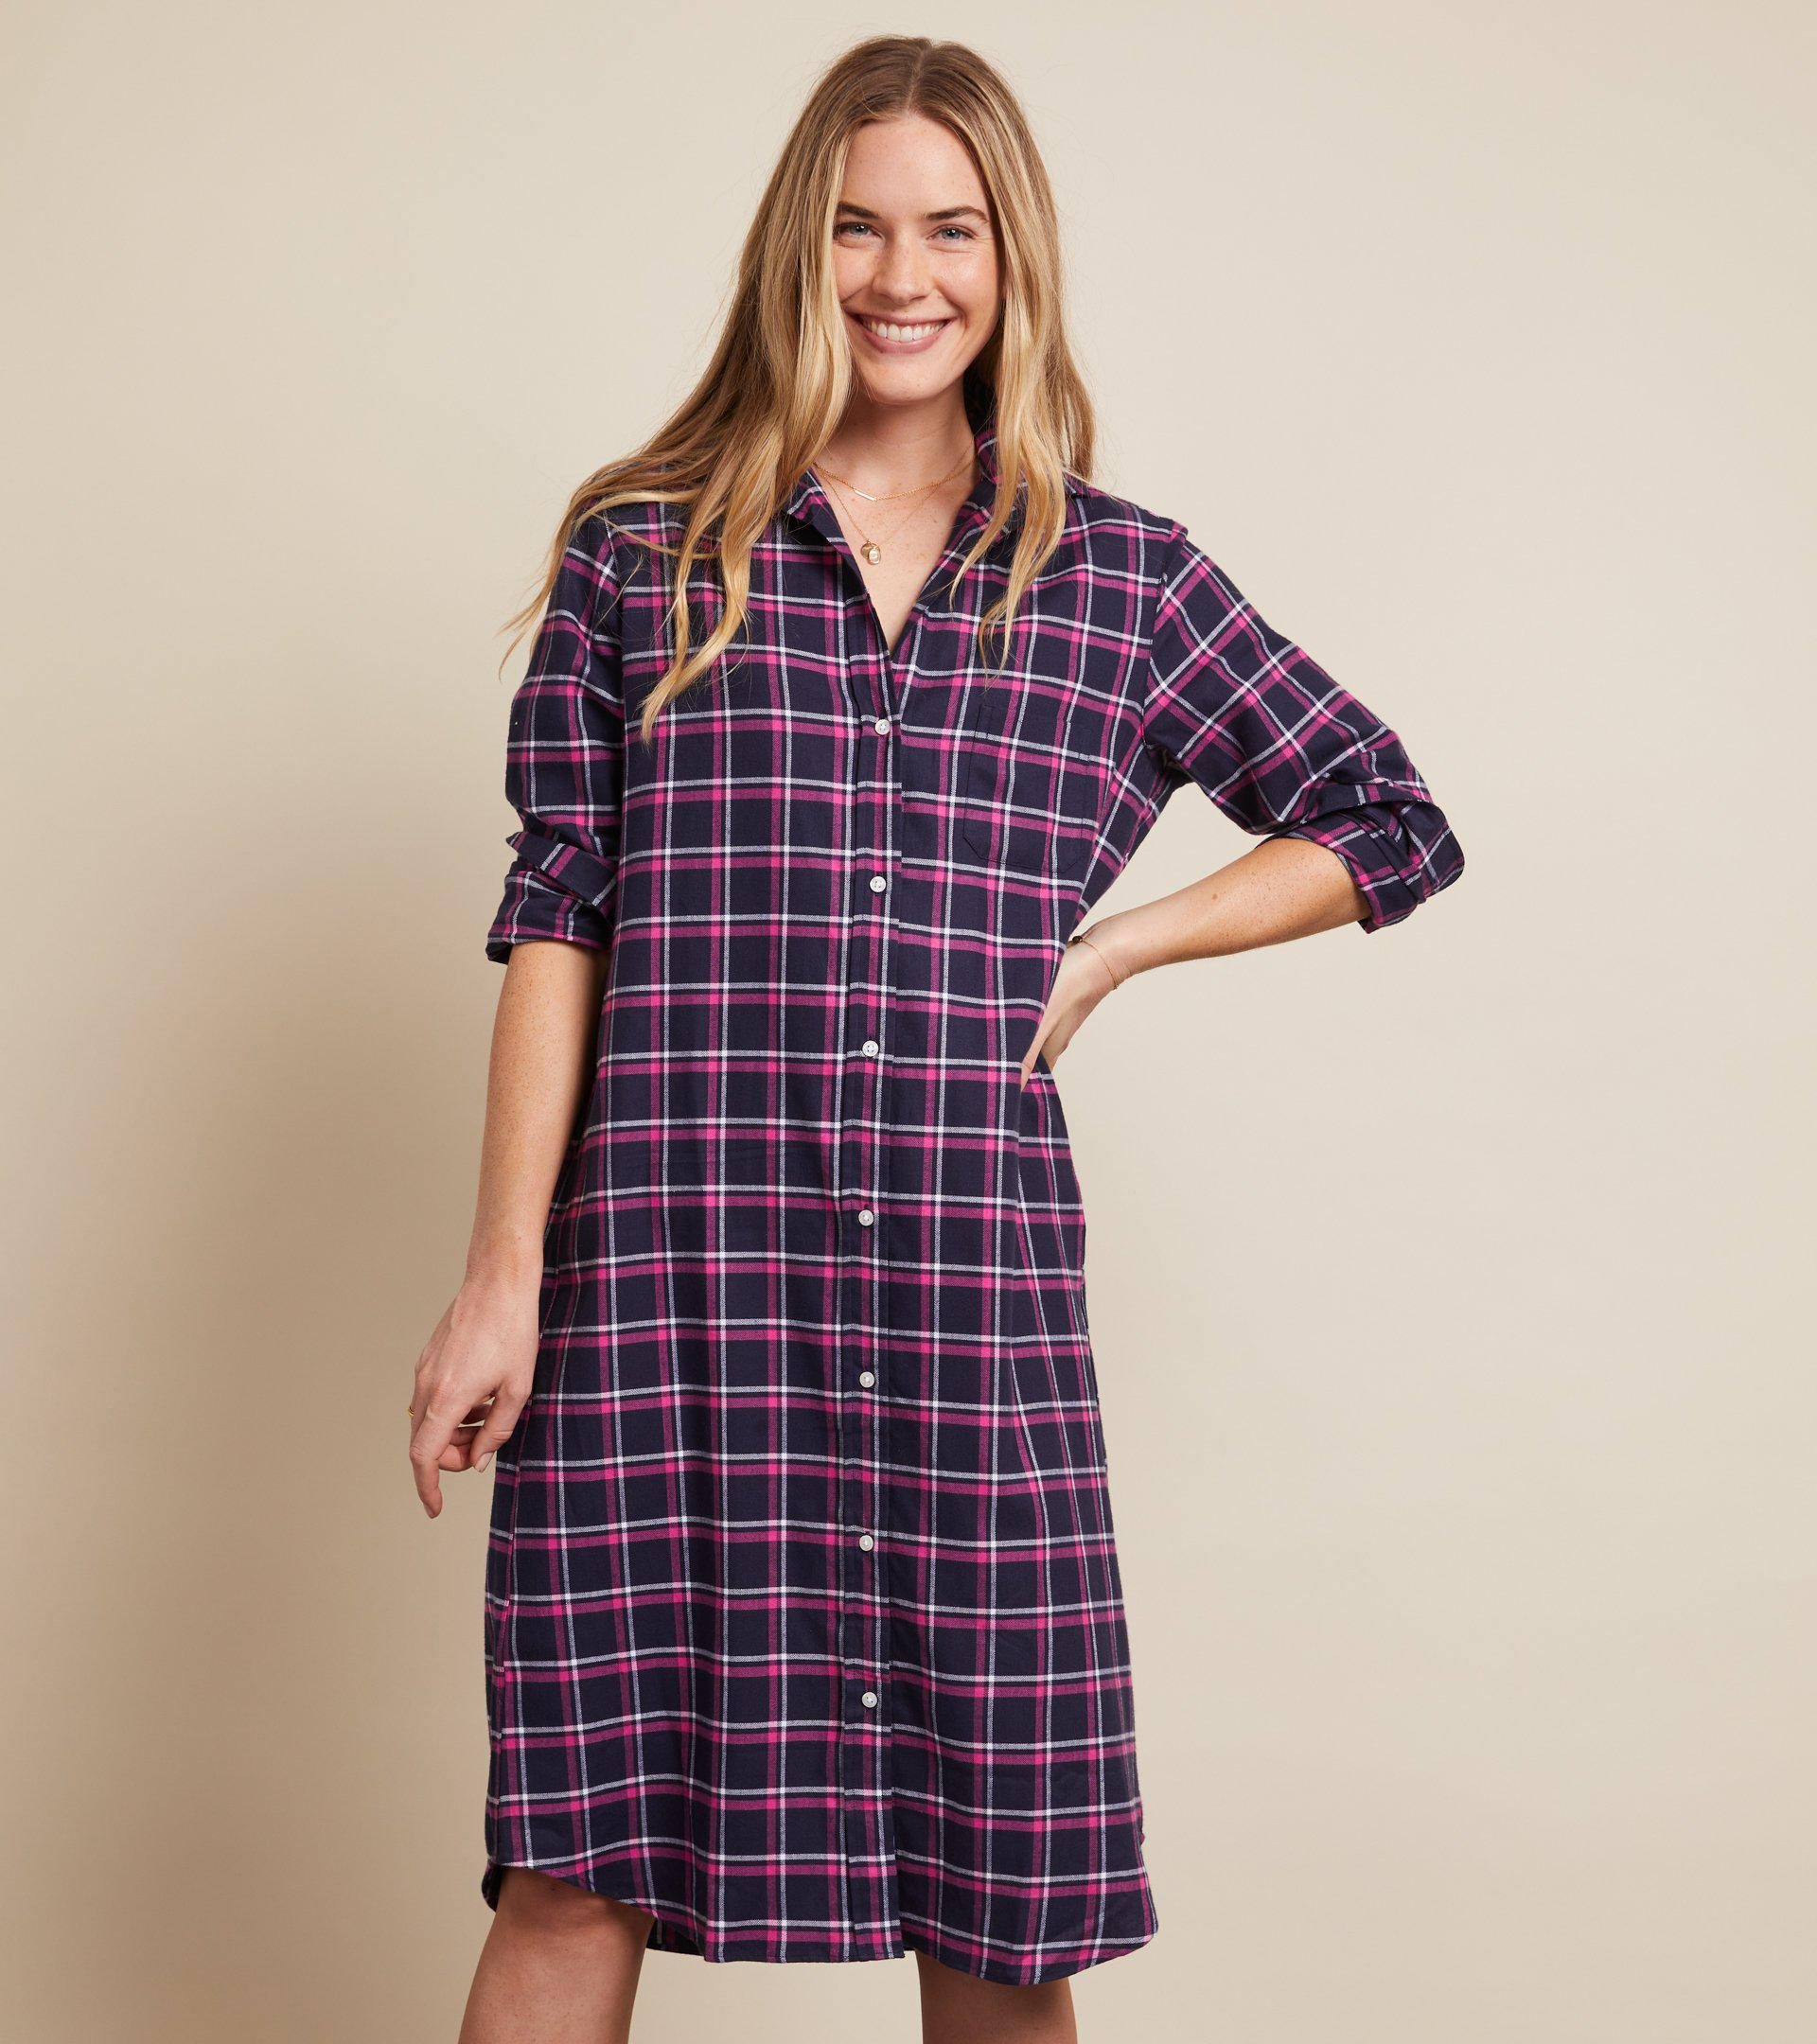 The Hero Midi Dress Navy, Pink, and White Plaid, Feathered Flannel